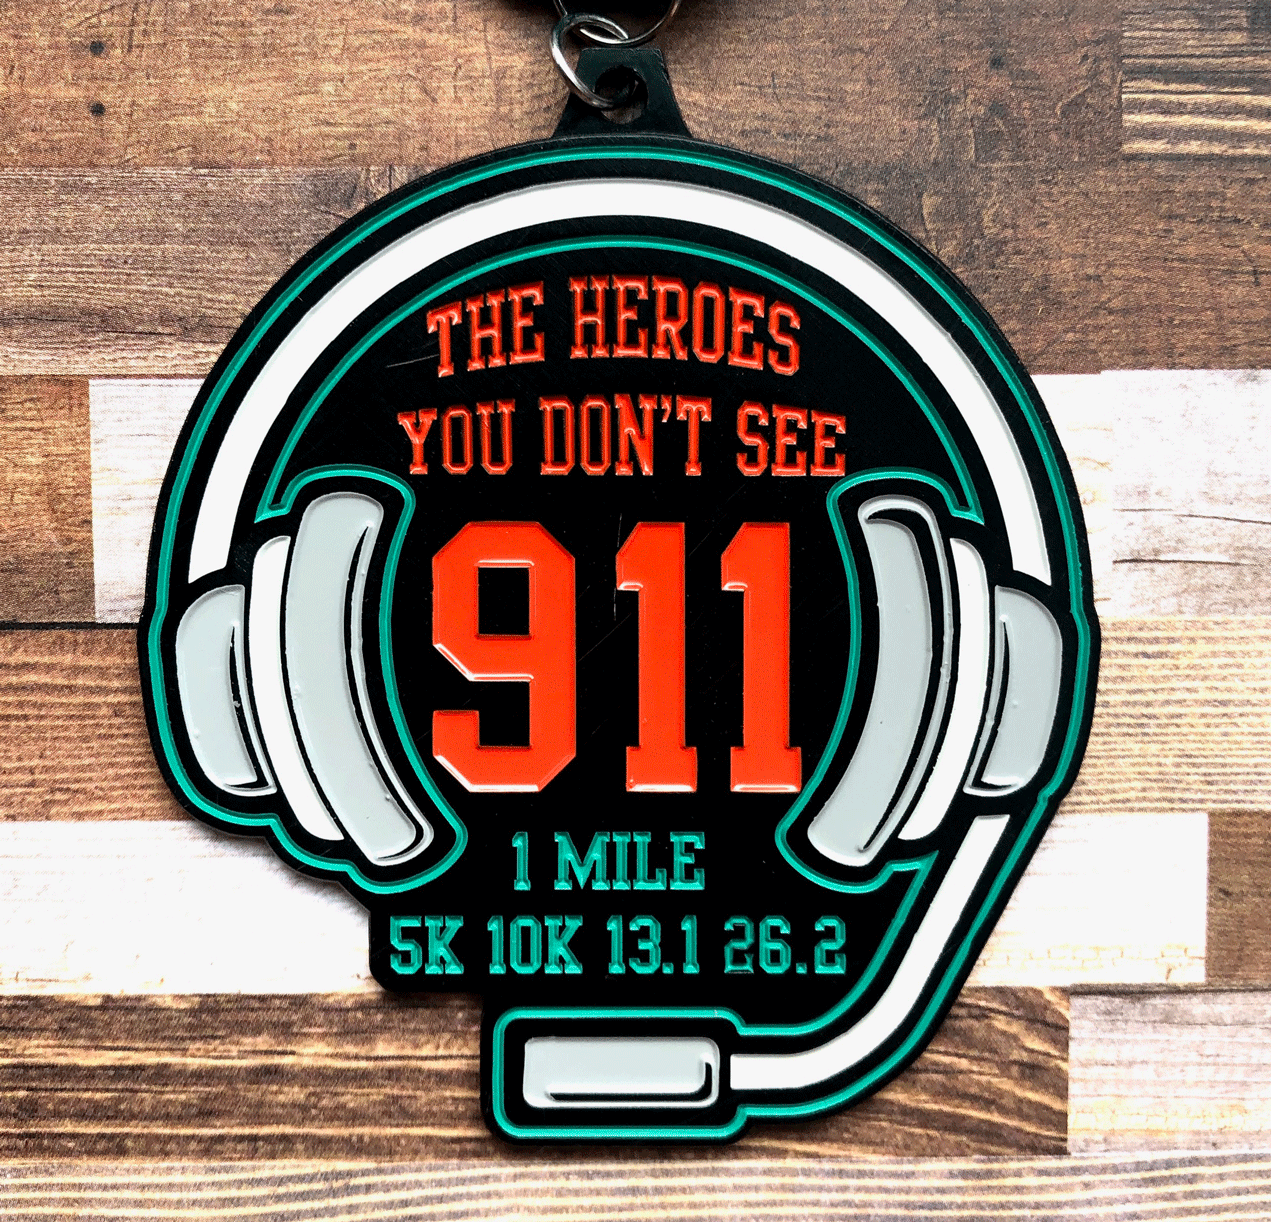 Only $9! The Heroes You Don't See 1 M 5K 10K 13.1 26.2 -El Paso